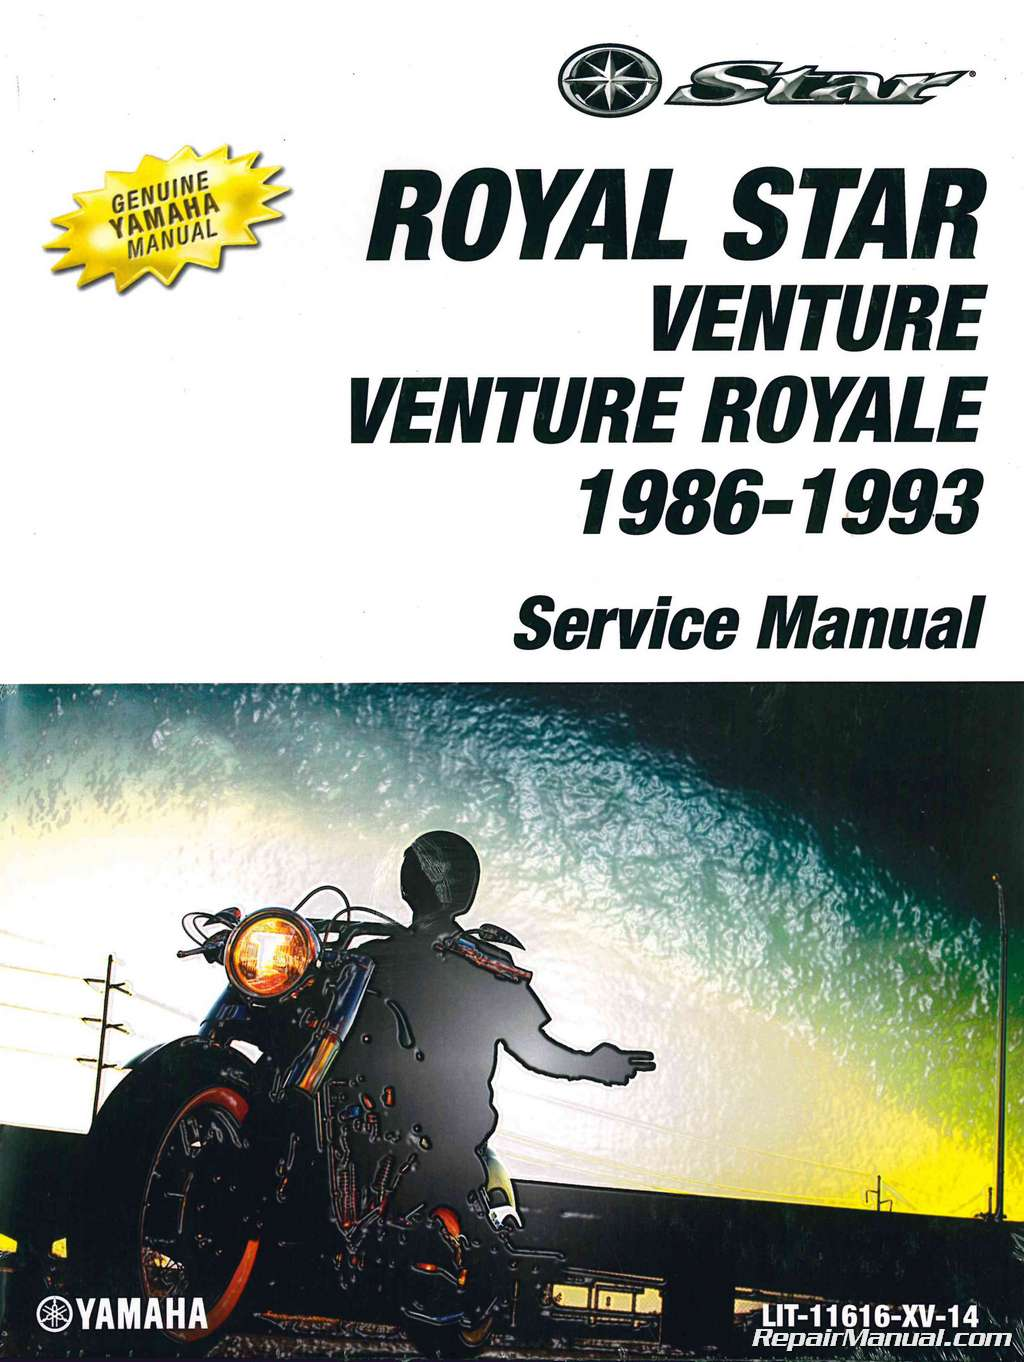 XVZ1300 Venture Yamaha Motorcycle Service Manual 1986-1993 on series and parallel circuits diagrams, lighting diagrams, friendship bracelet diagrams, hvac diagrams, troubleshooting diagrams, internet of things diagrams, led circuit diagrams, battery diagrams, switch diagrams, honda motorcycle repair diagrams, pinout diagrams, engine diagrams, smart car diagrams, transformer diagrams, motor diagrams, electronic circuit diagrams, gmc fuse box diagrams, sincgars radio configurations diagrams, electrical diagrams,